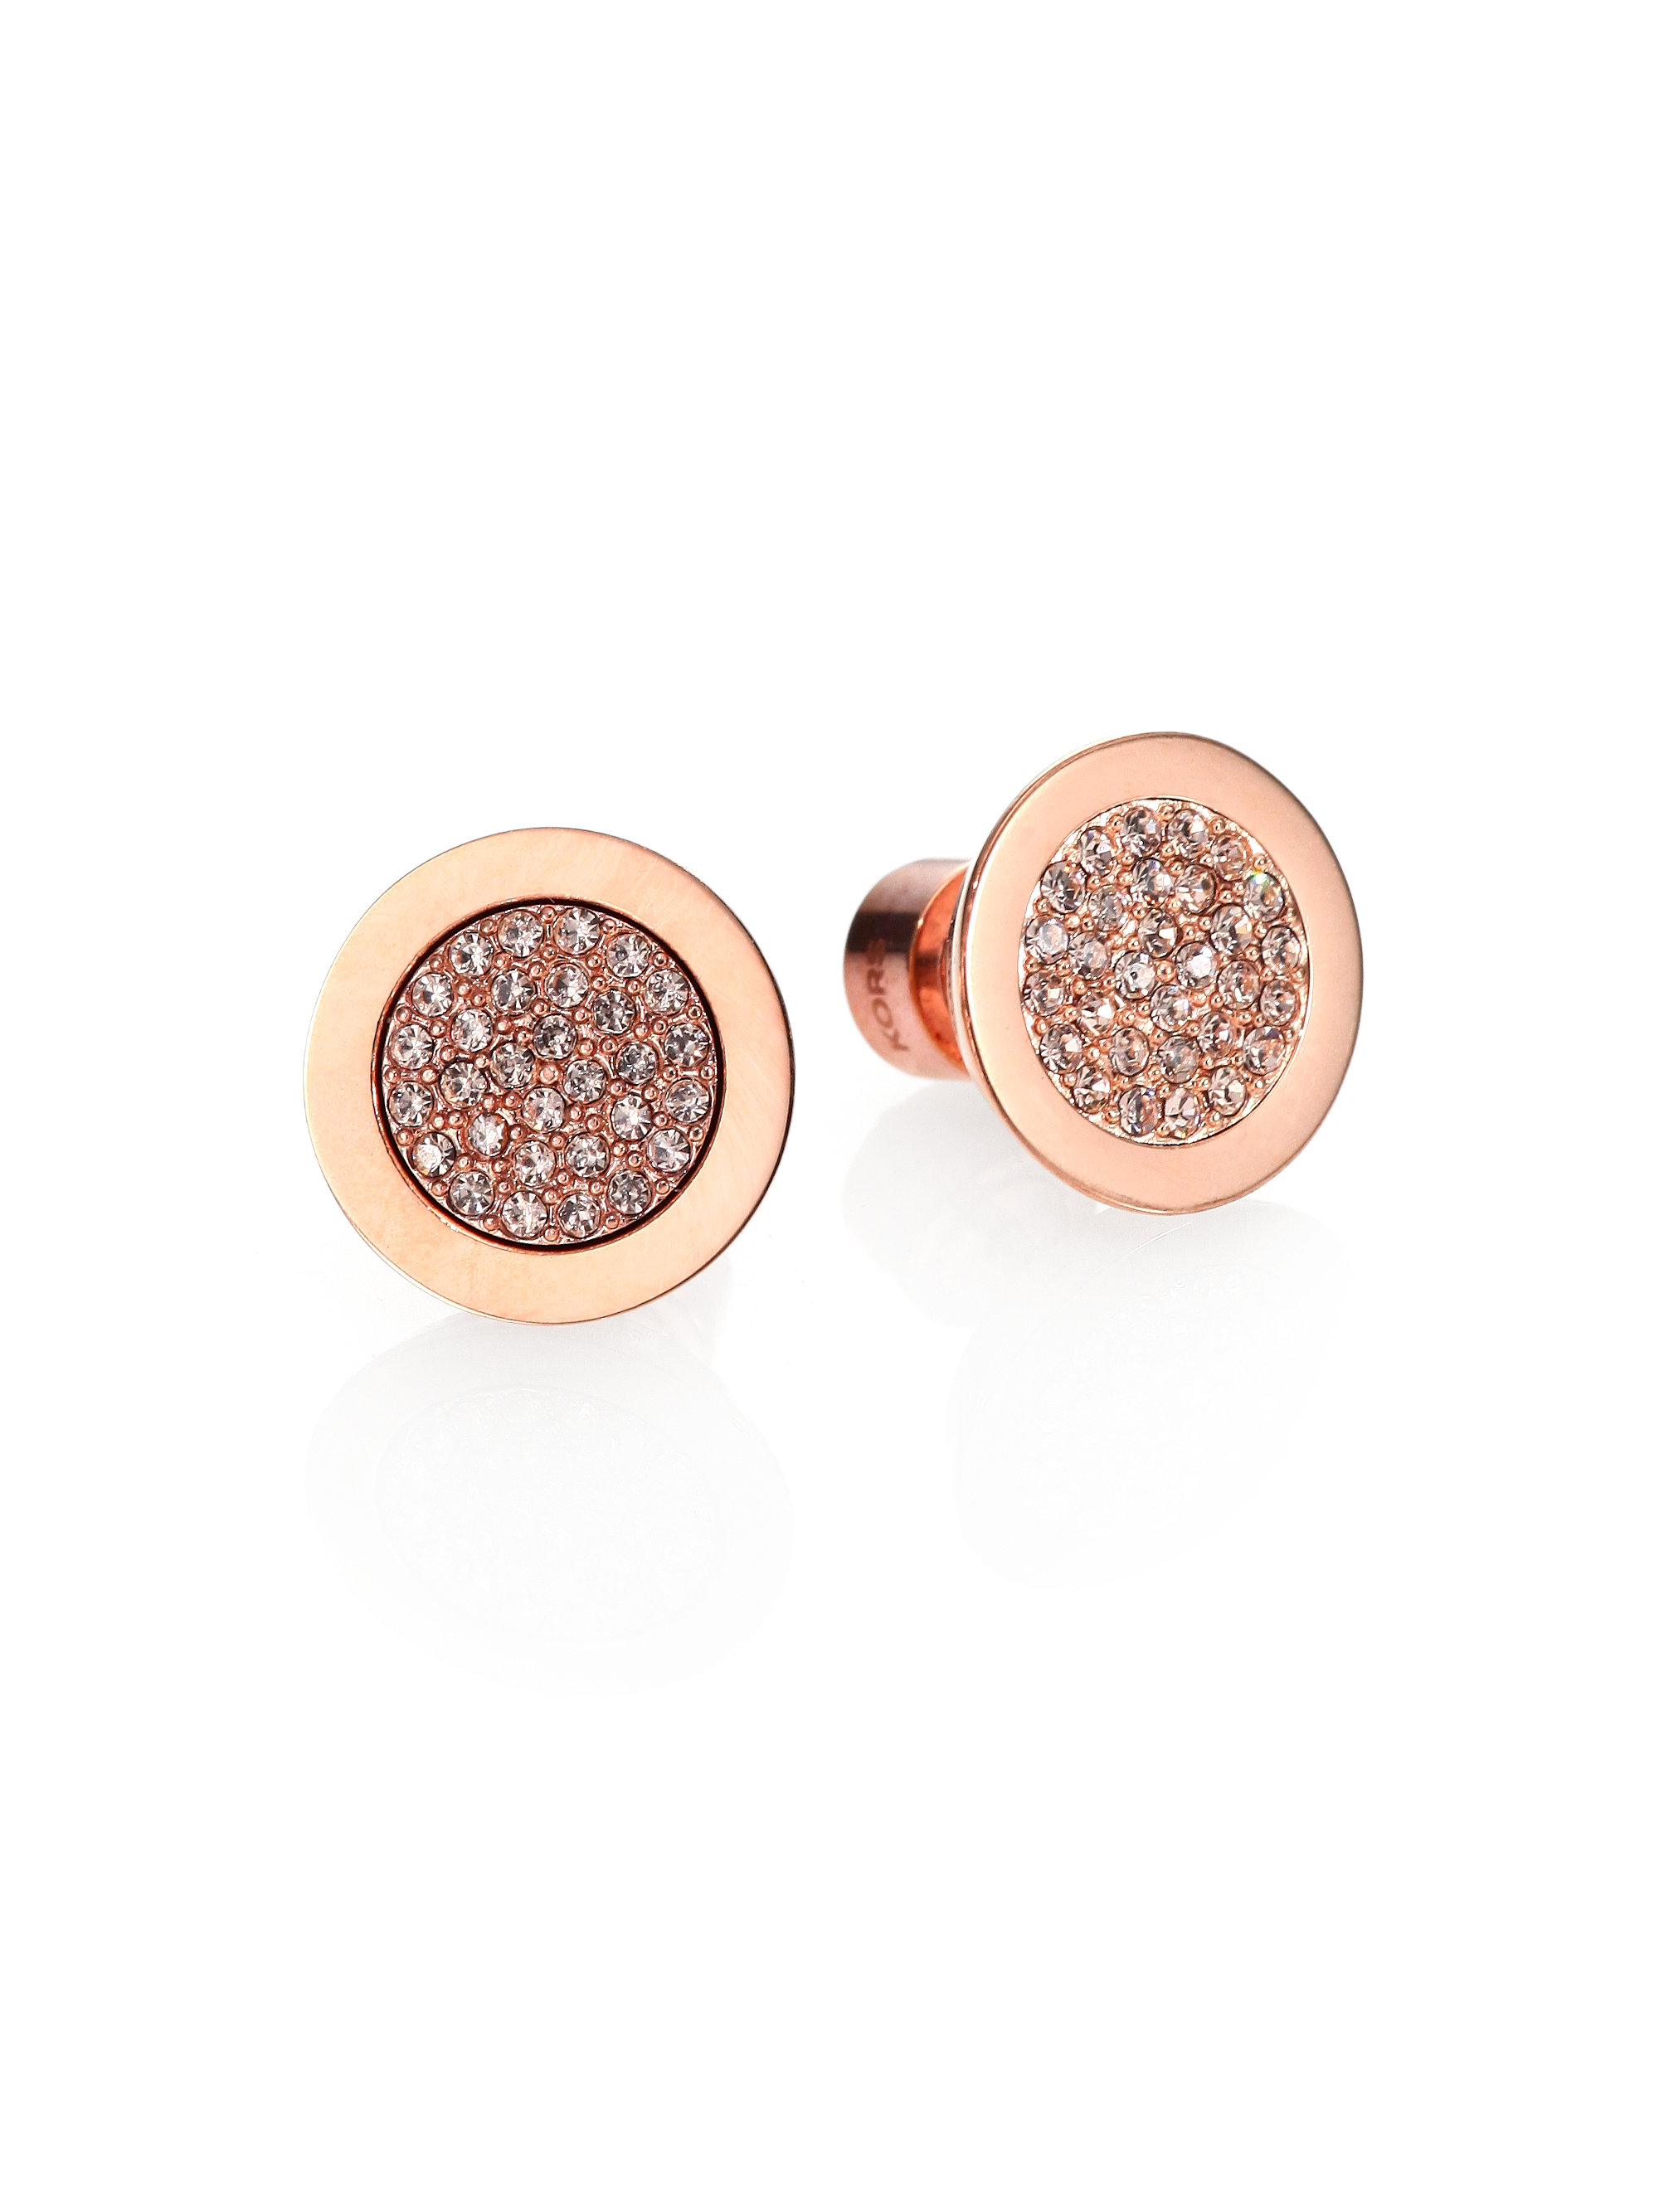 442d01776 Michael Kors PavÉ Slice Stud Earrings/Rose Goldtone in ...